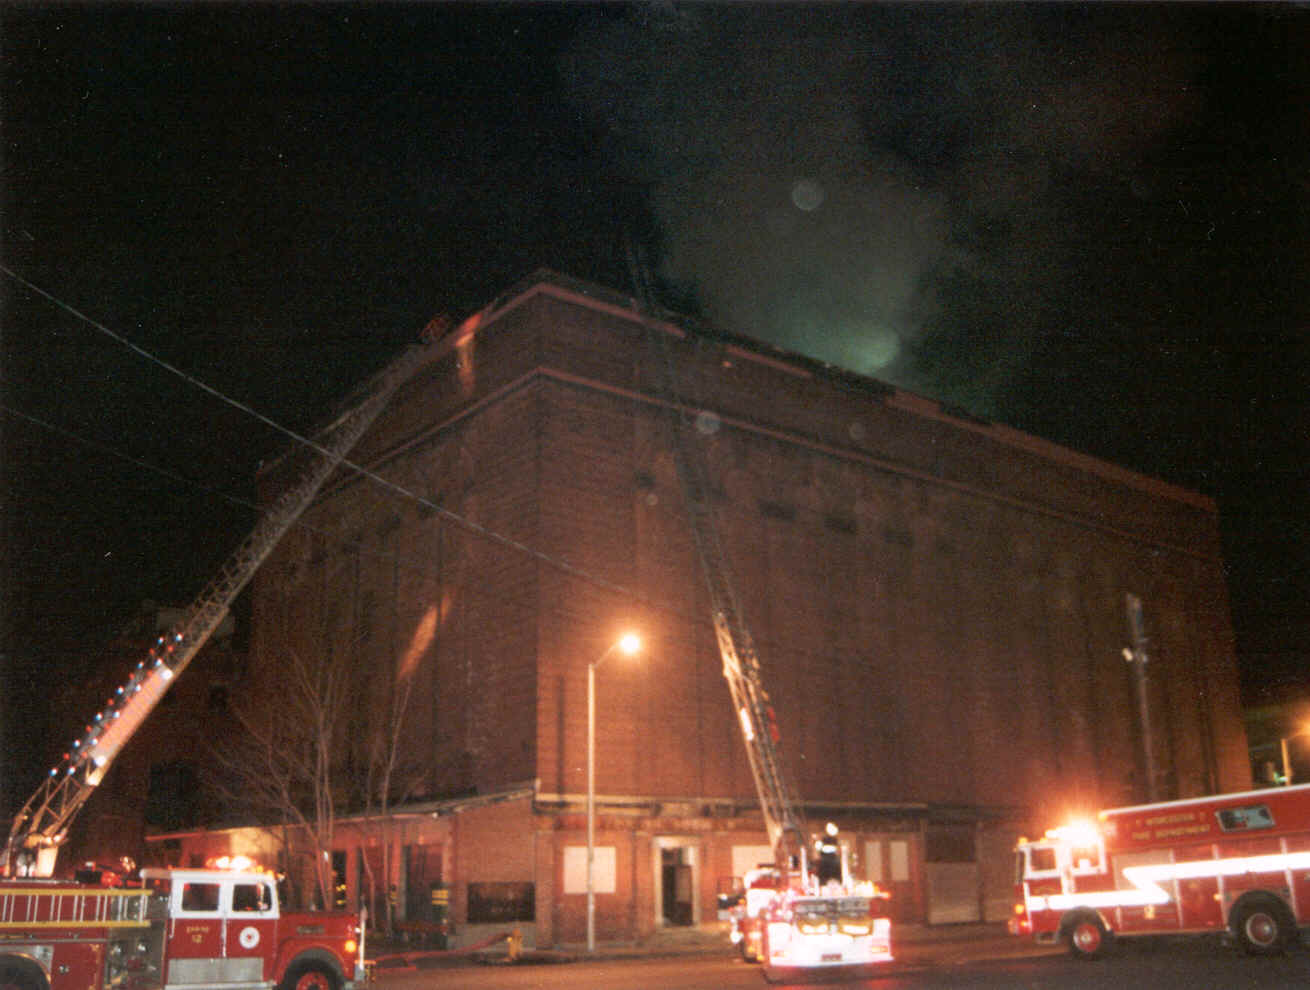 Cold-Storage and Warehouse Building Shortly After First Alarm - 1825 Hours